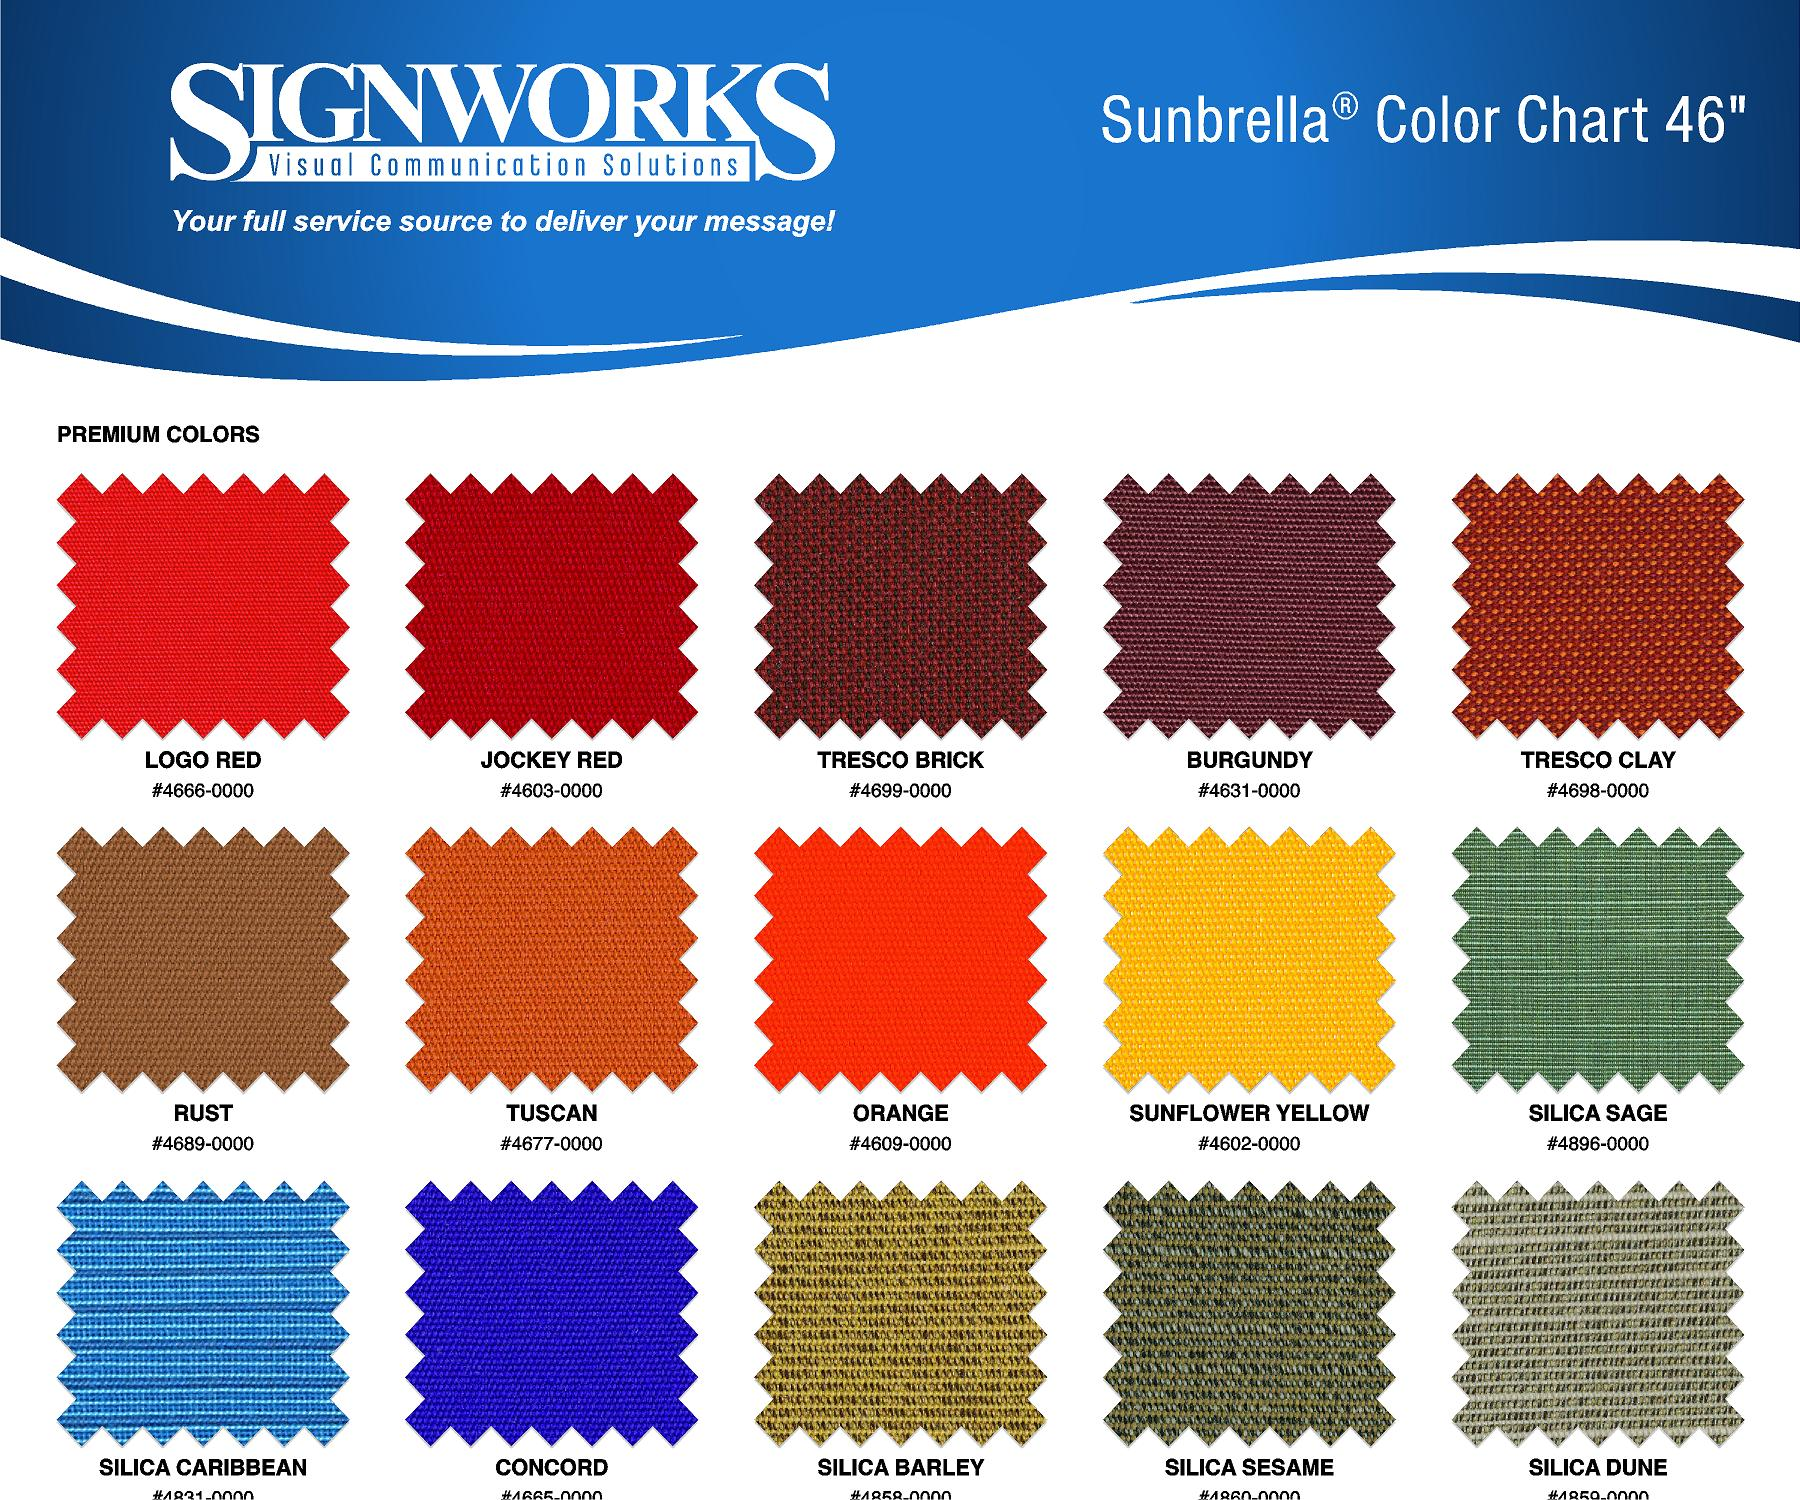 Sunbrella Fabric Options